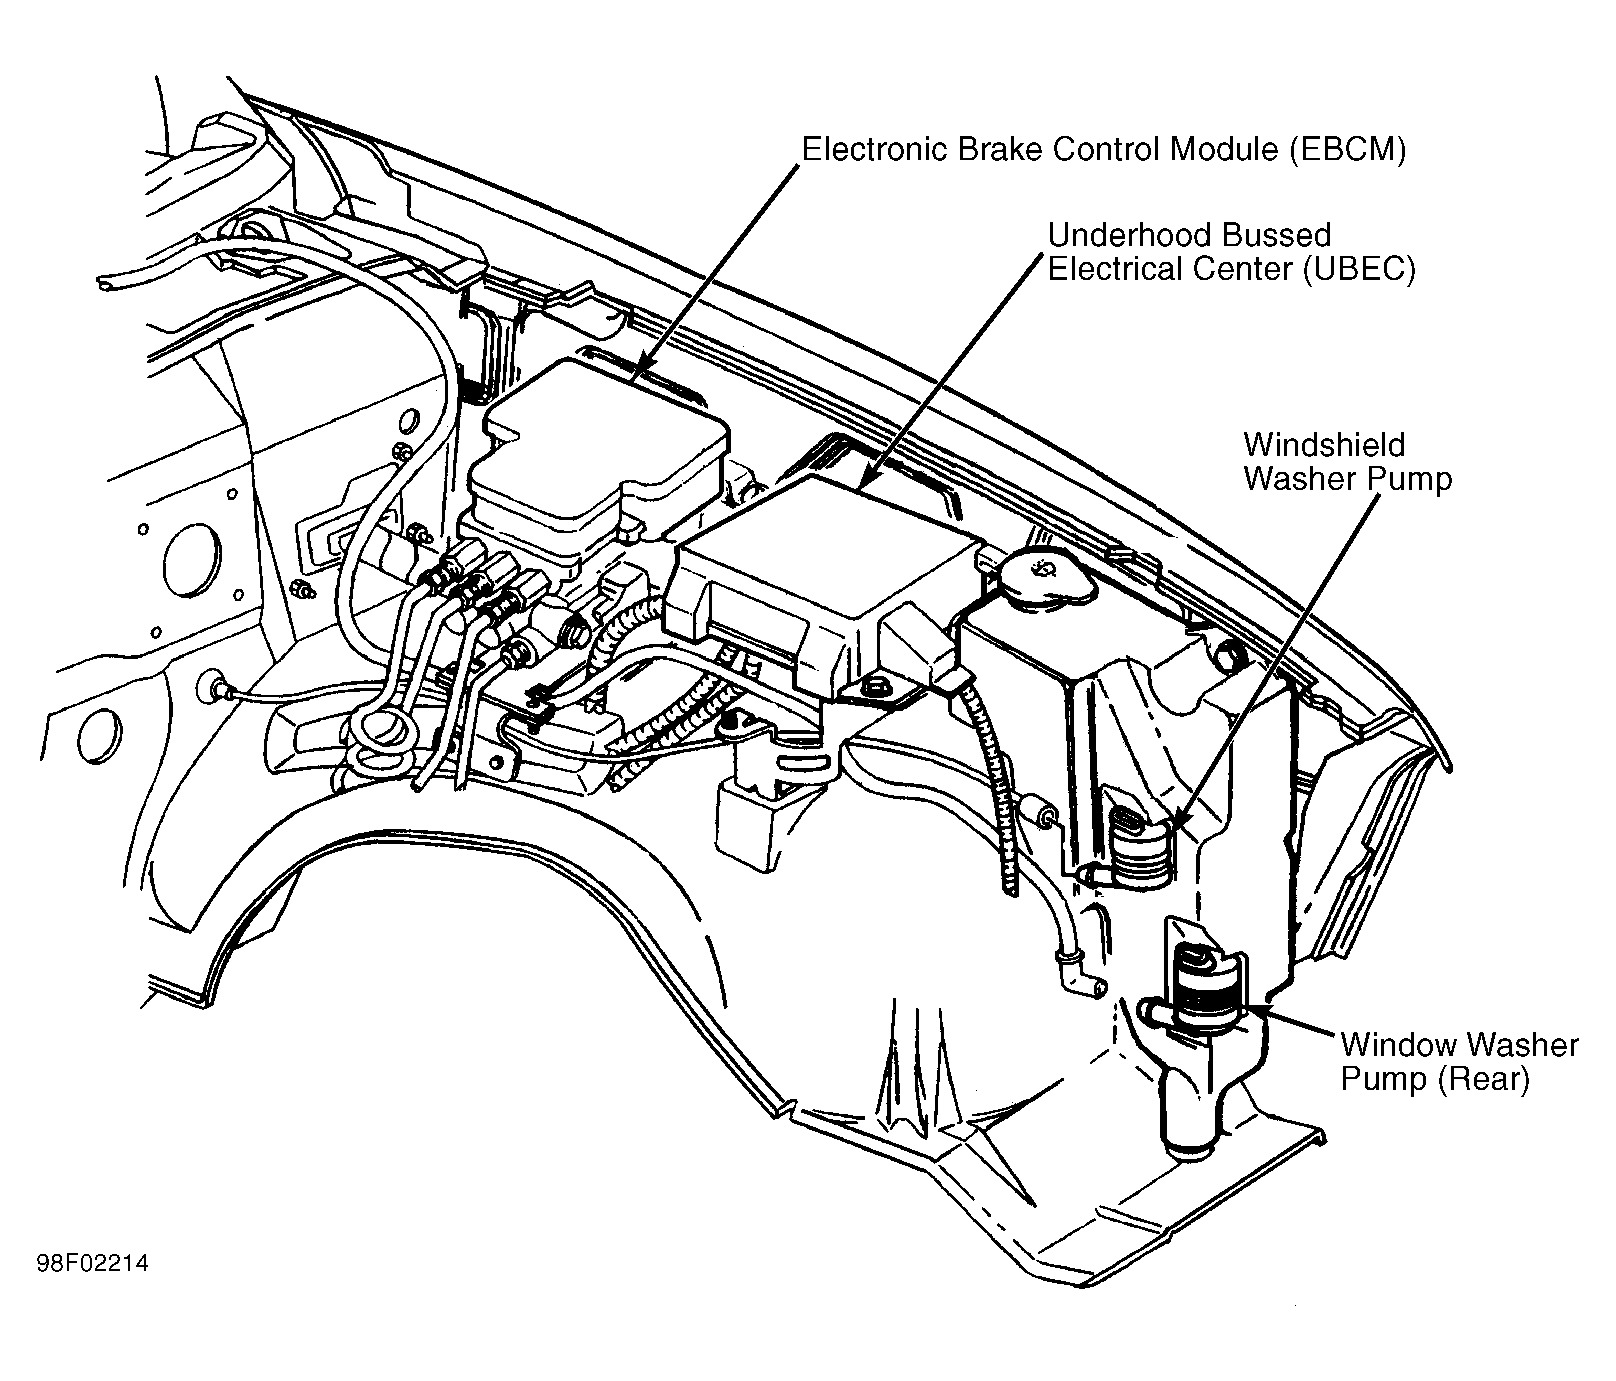 1999 Gmc Safari Fuel Pump Wiring Diagram Reinvent Your 2000 Blazer 1998 Sonoma Fuse Box Detailed Schematics Rh Antonartgallery Com Gm Connector Chevy Mechanical